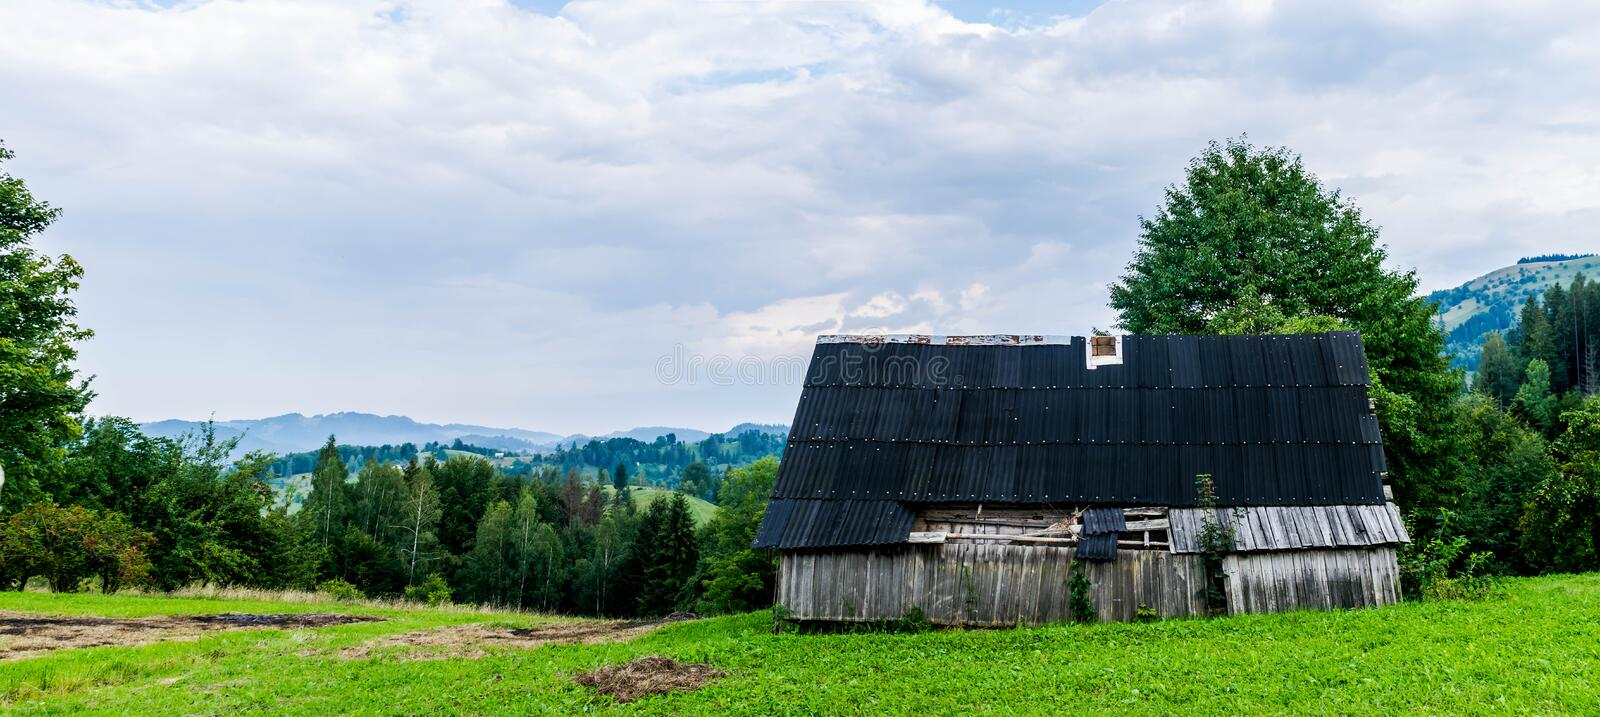 Old barn in the mountains stock photo